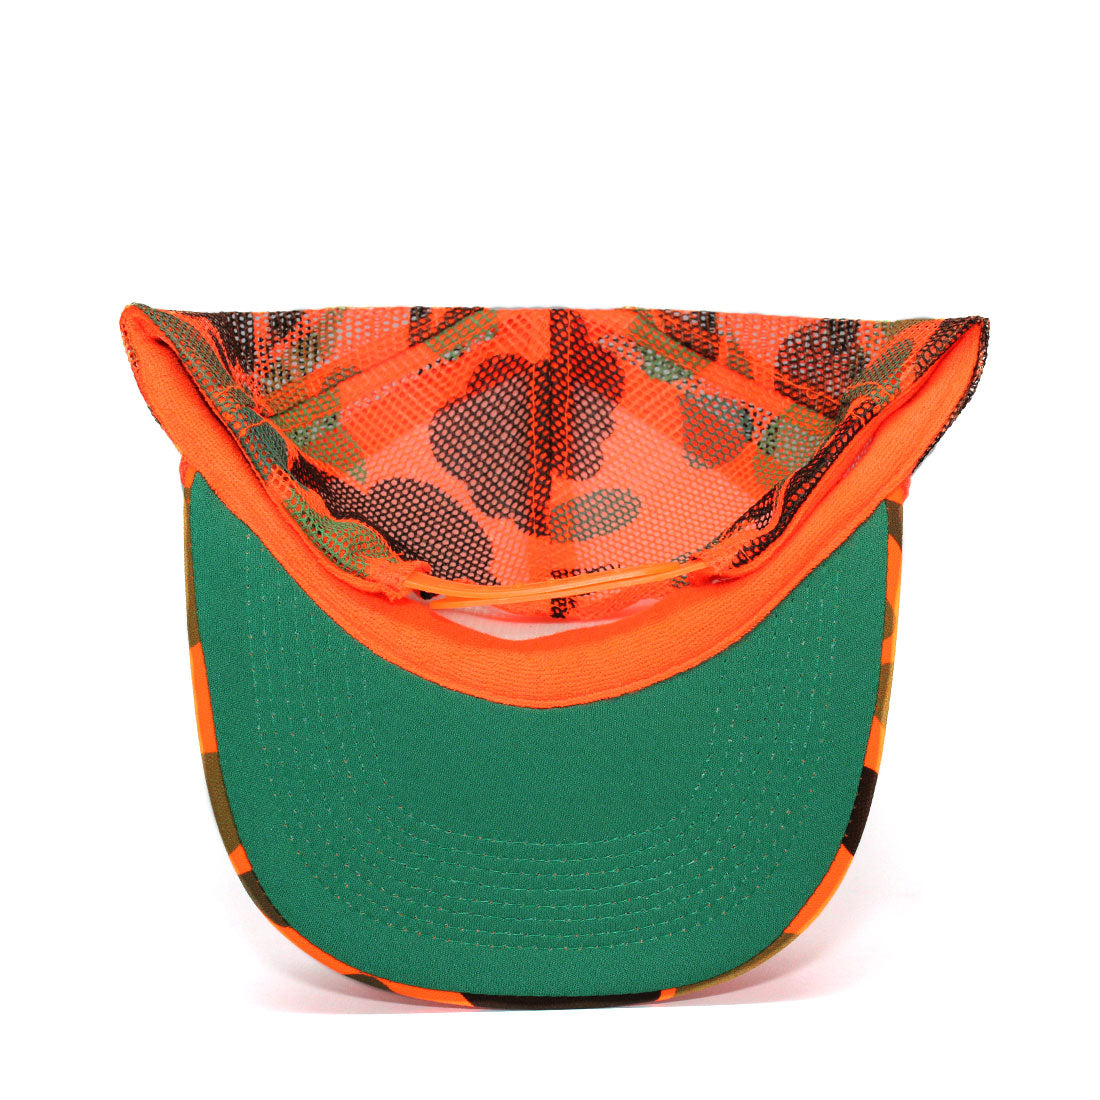 RIZNWILD | neon orange trucker hat with green under visor